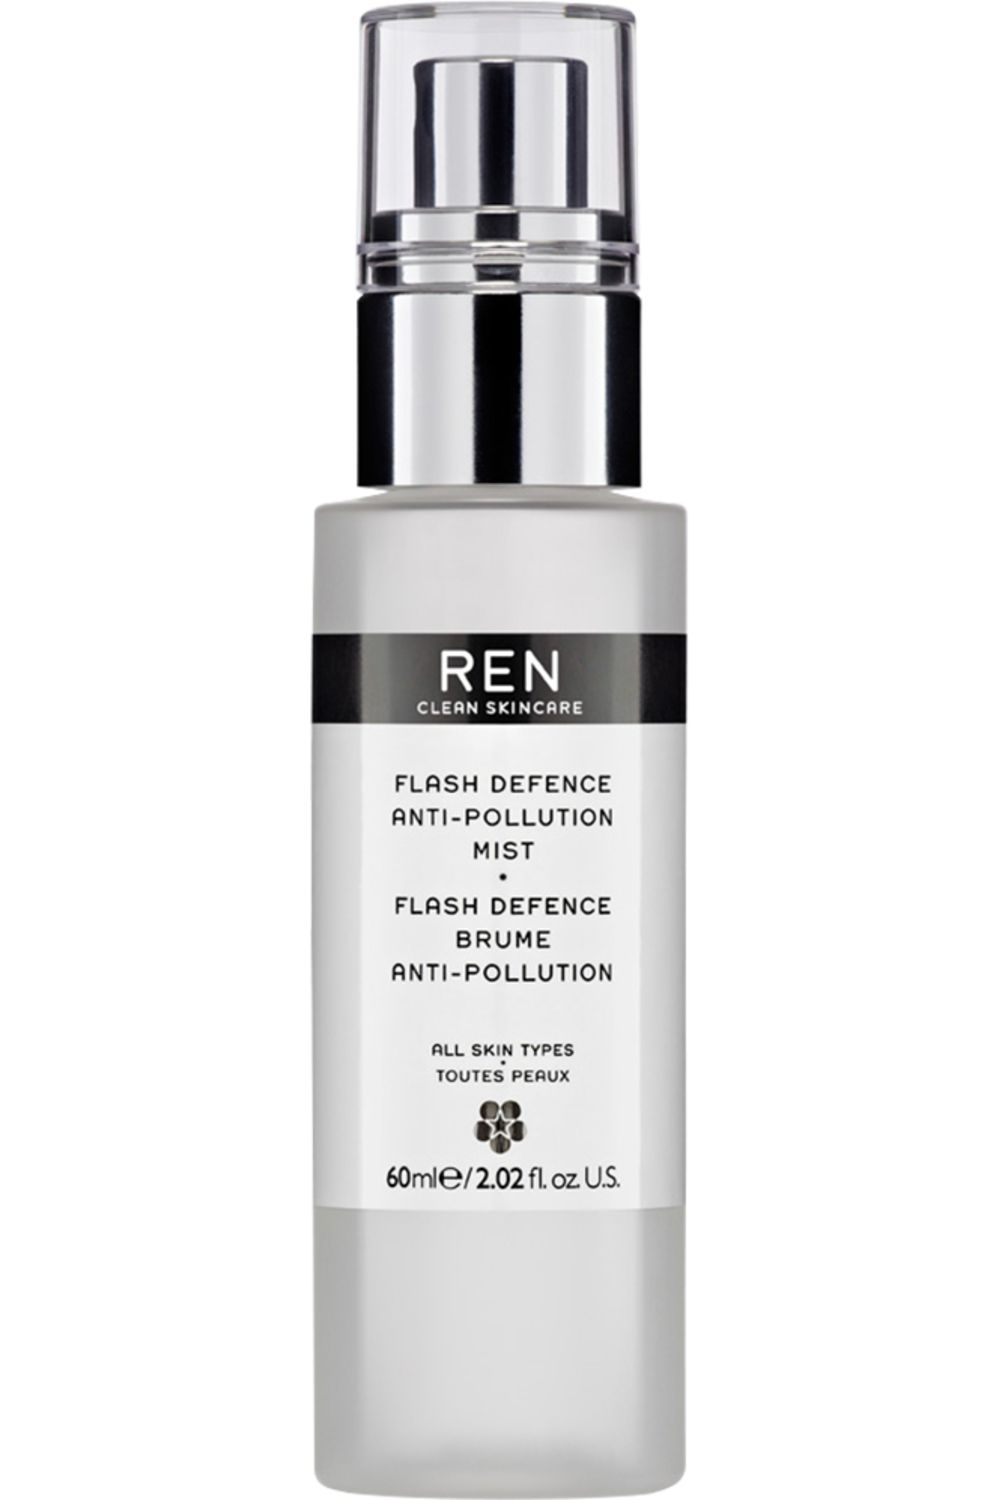 Blissim : REN - Brume anti-pollution Flash Defence - Brume anti-pollution Flash Defence